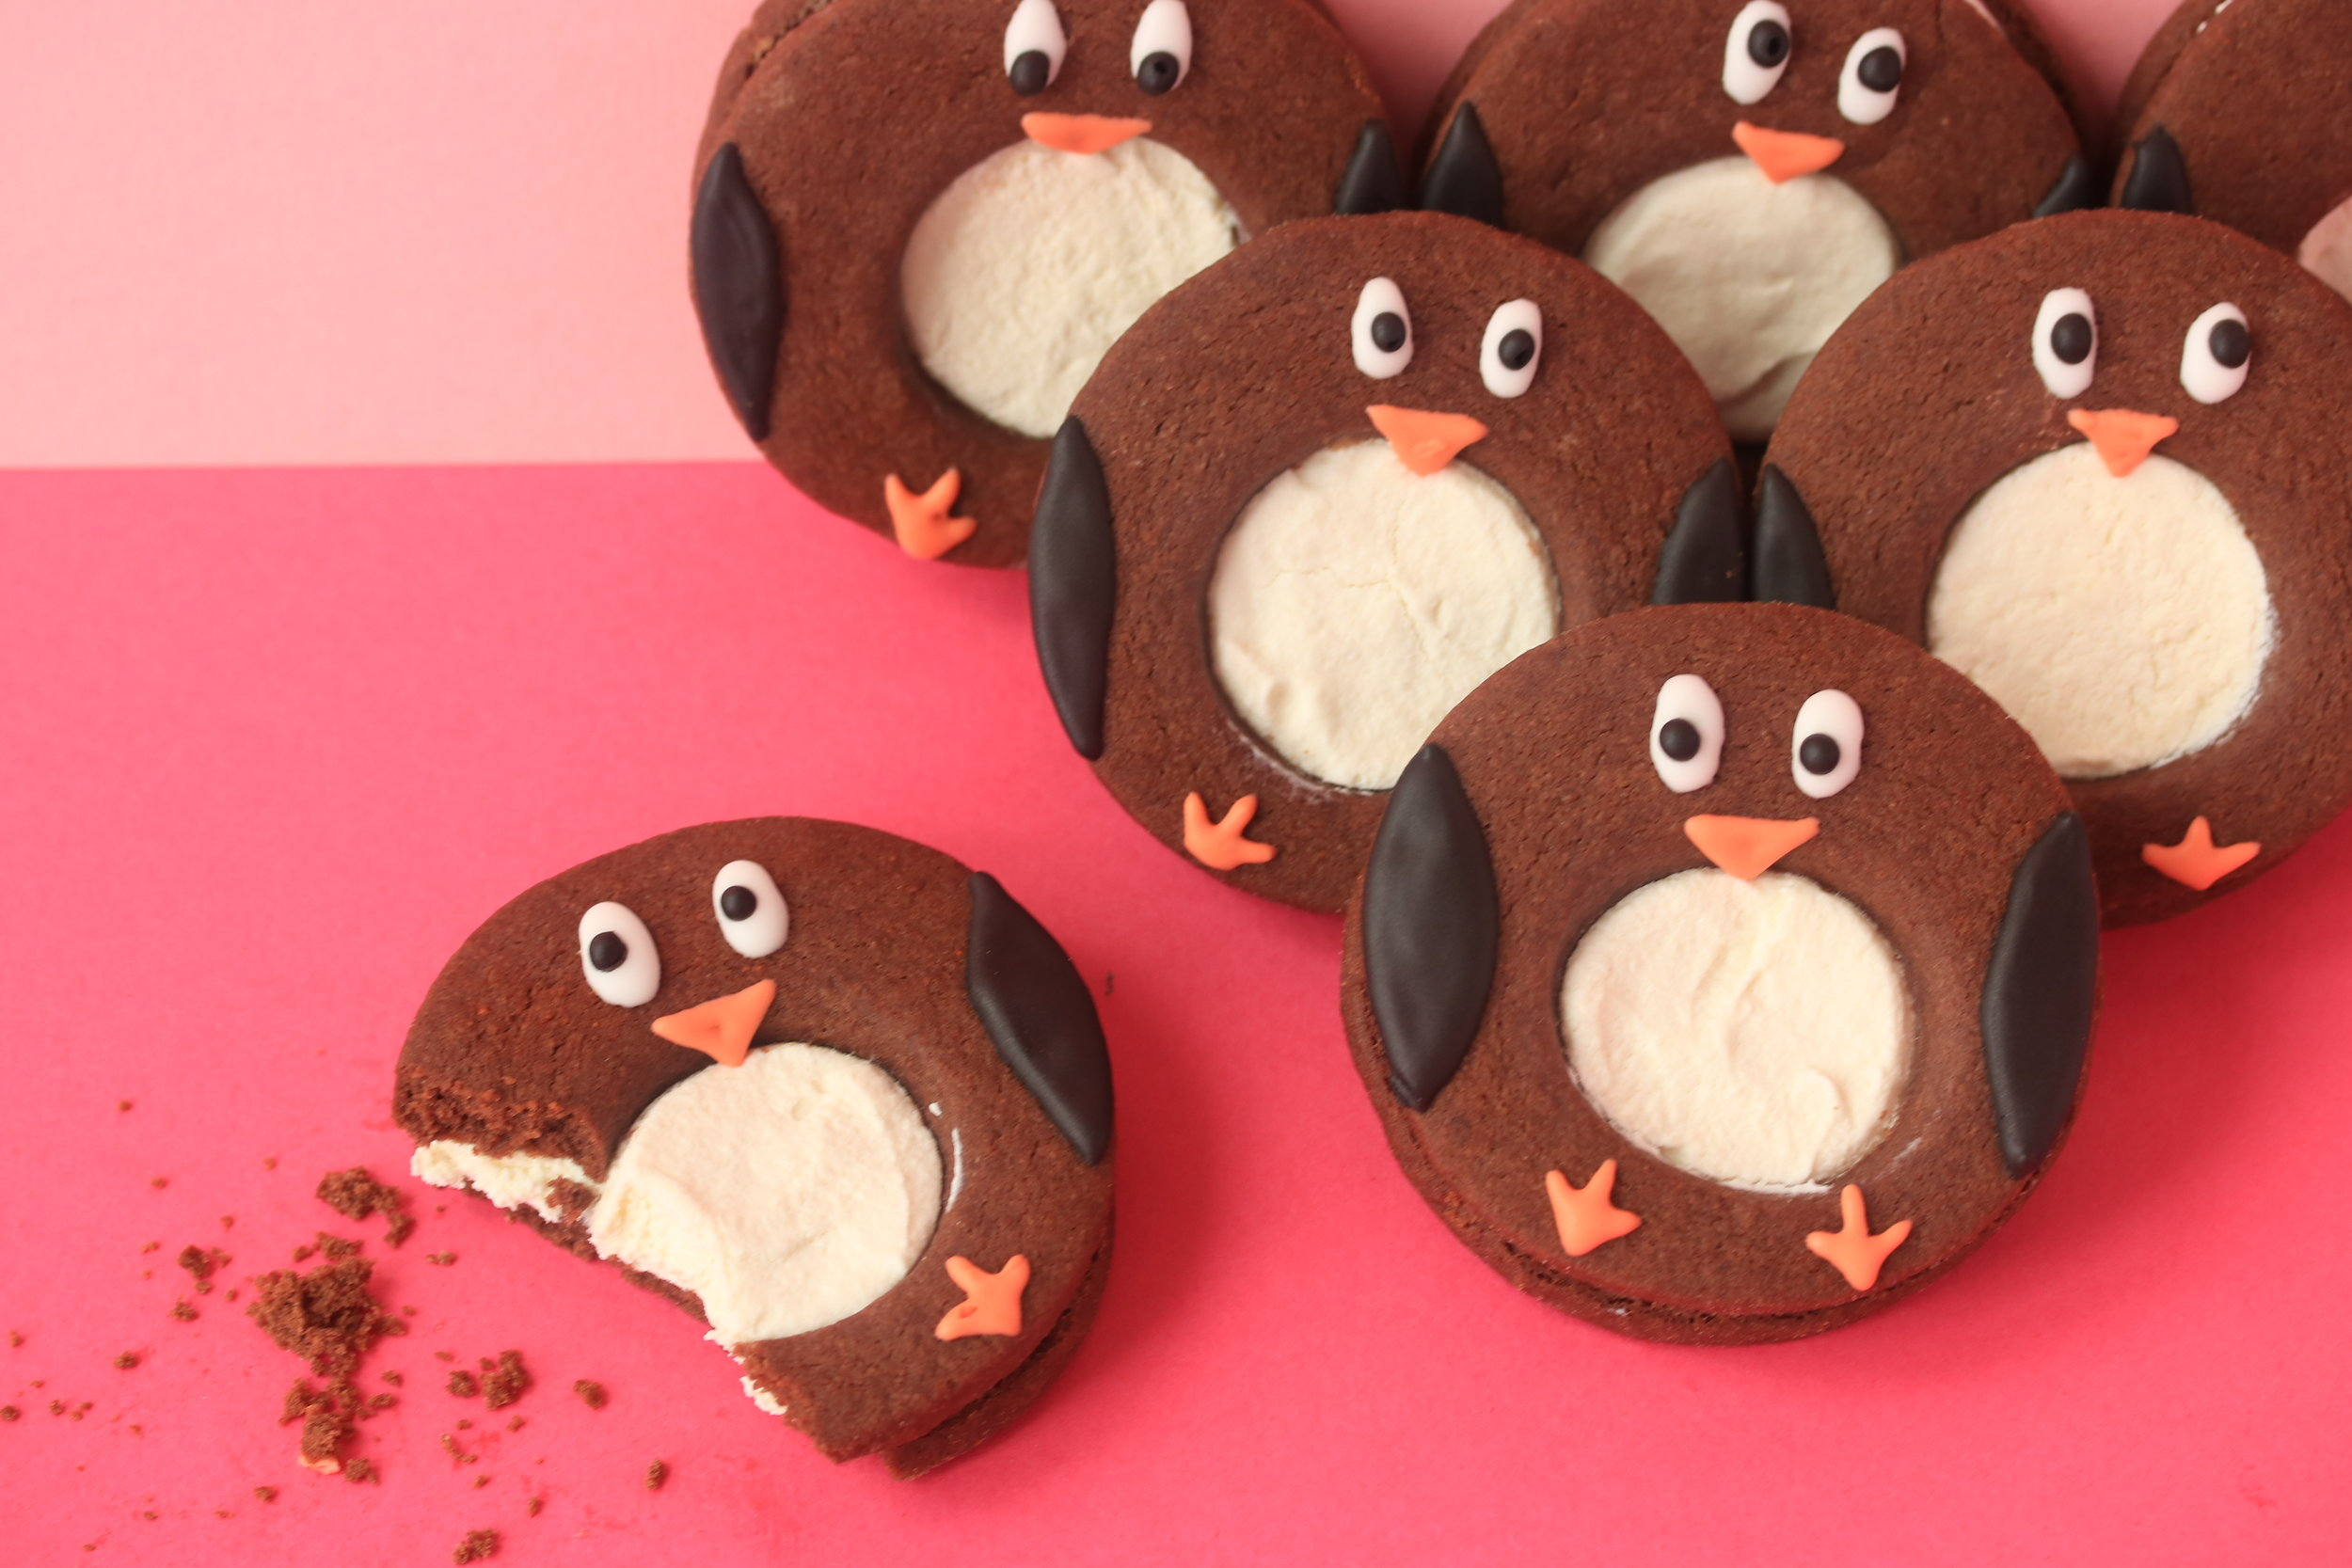 Chocolate and chilli penguin biscuits